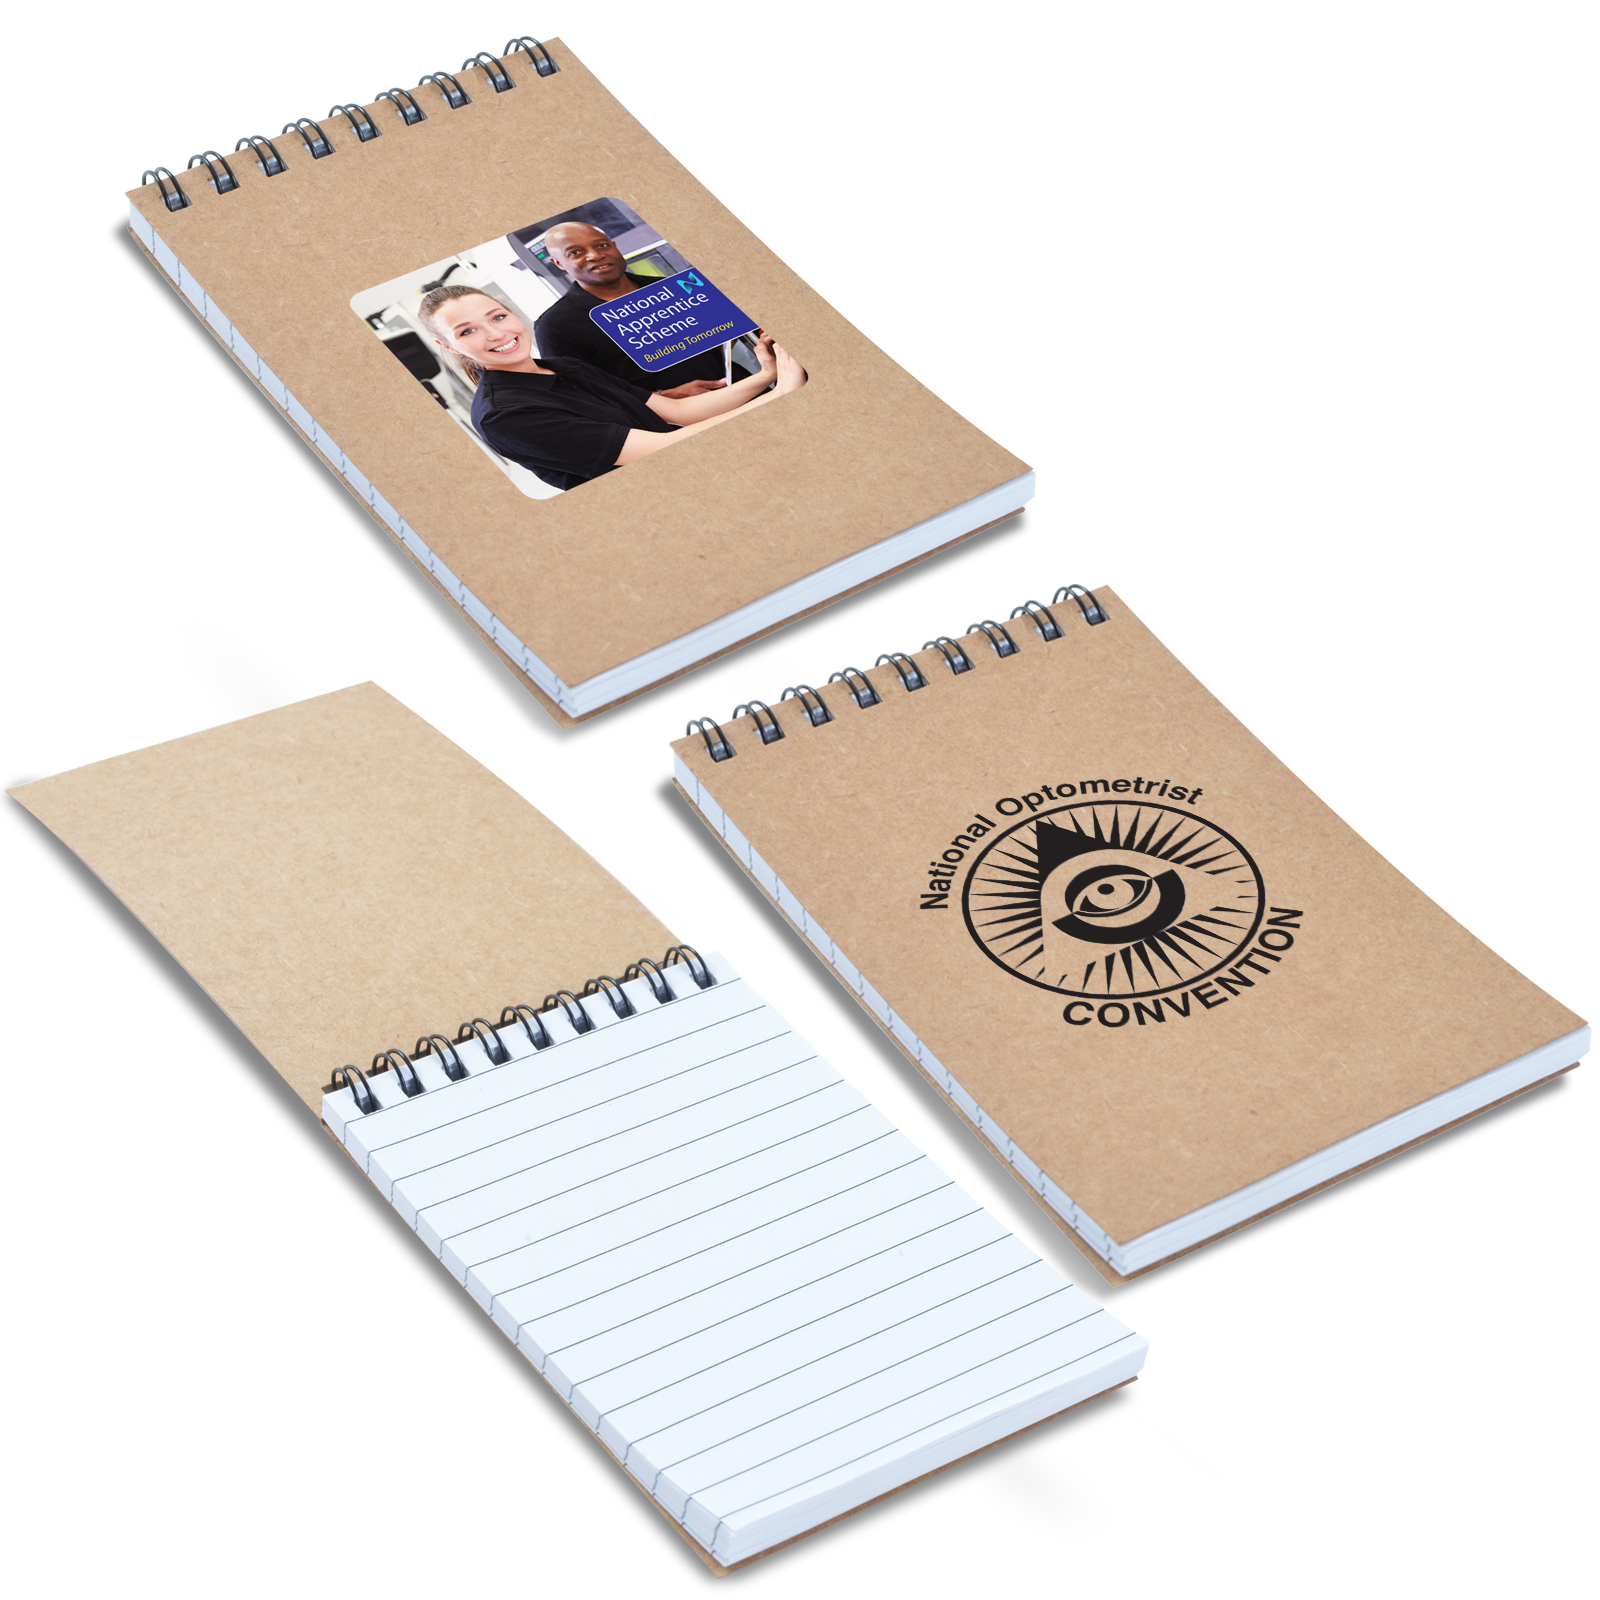 Survey Spiral Pocket Notebook - Includes a 1 colour printed logo, From $1.04